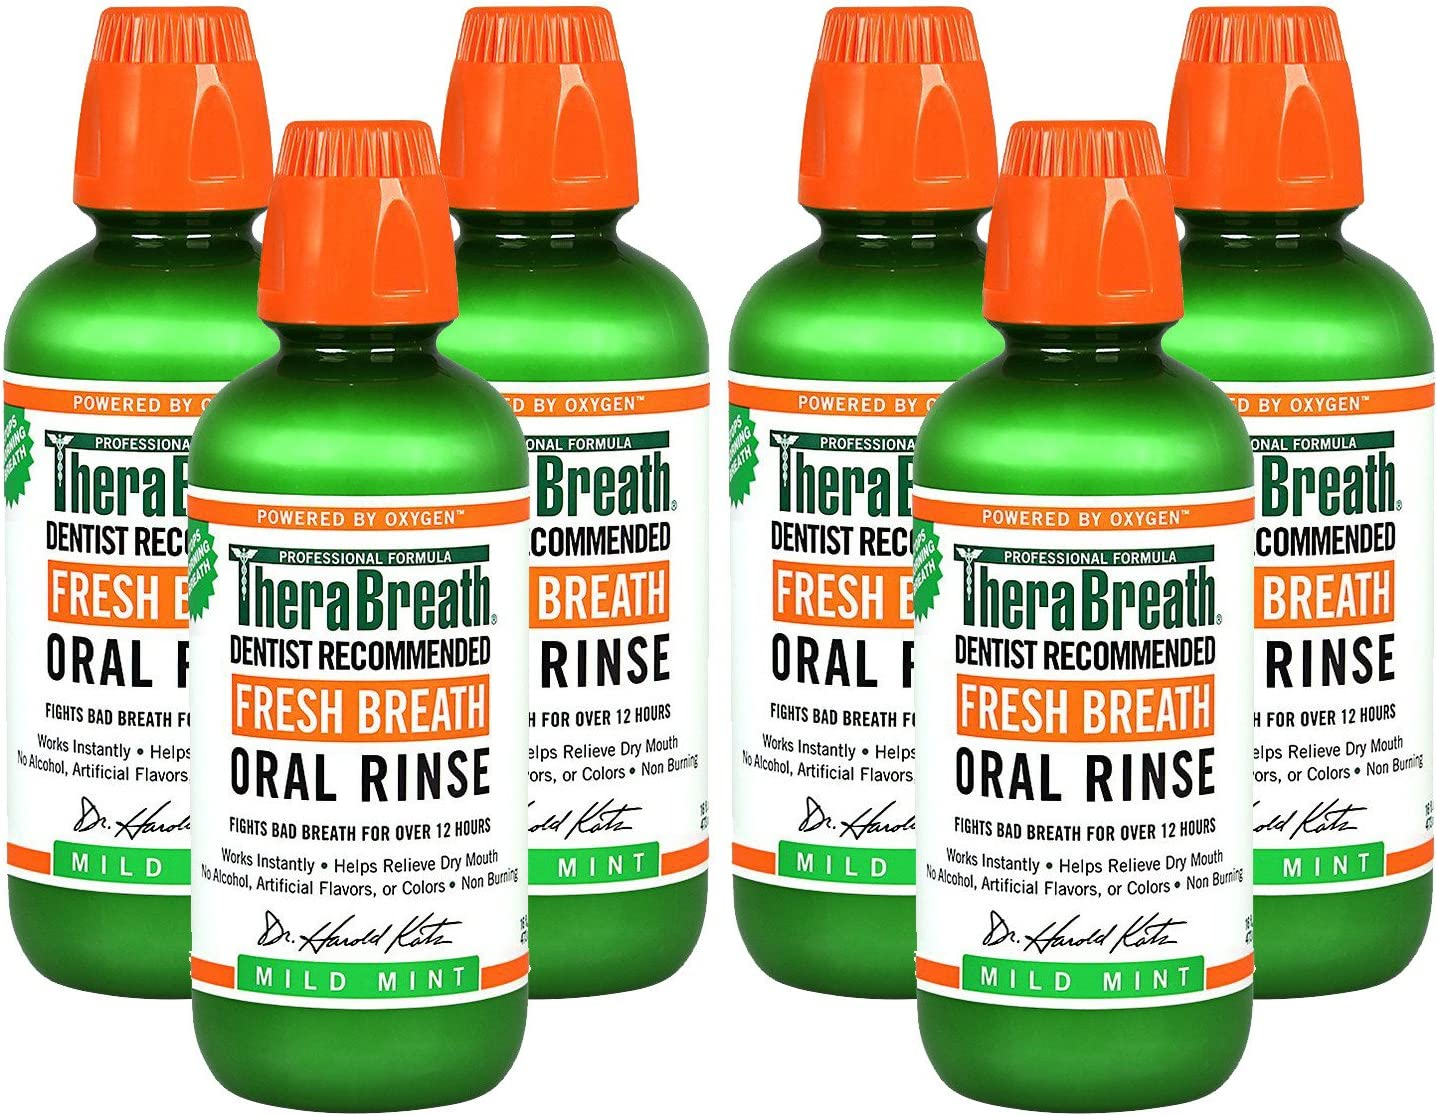 TheraBreath Dentist Recommended Fresh Breath Oral Rinse - Mild Mint Flavor PlfYBc, 16 Ounce (Pack of 6)